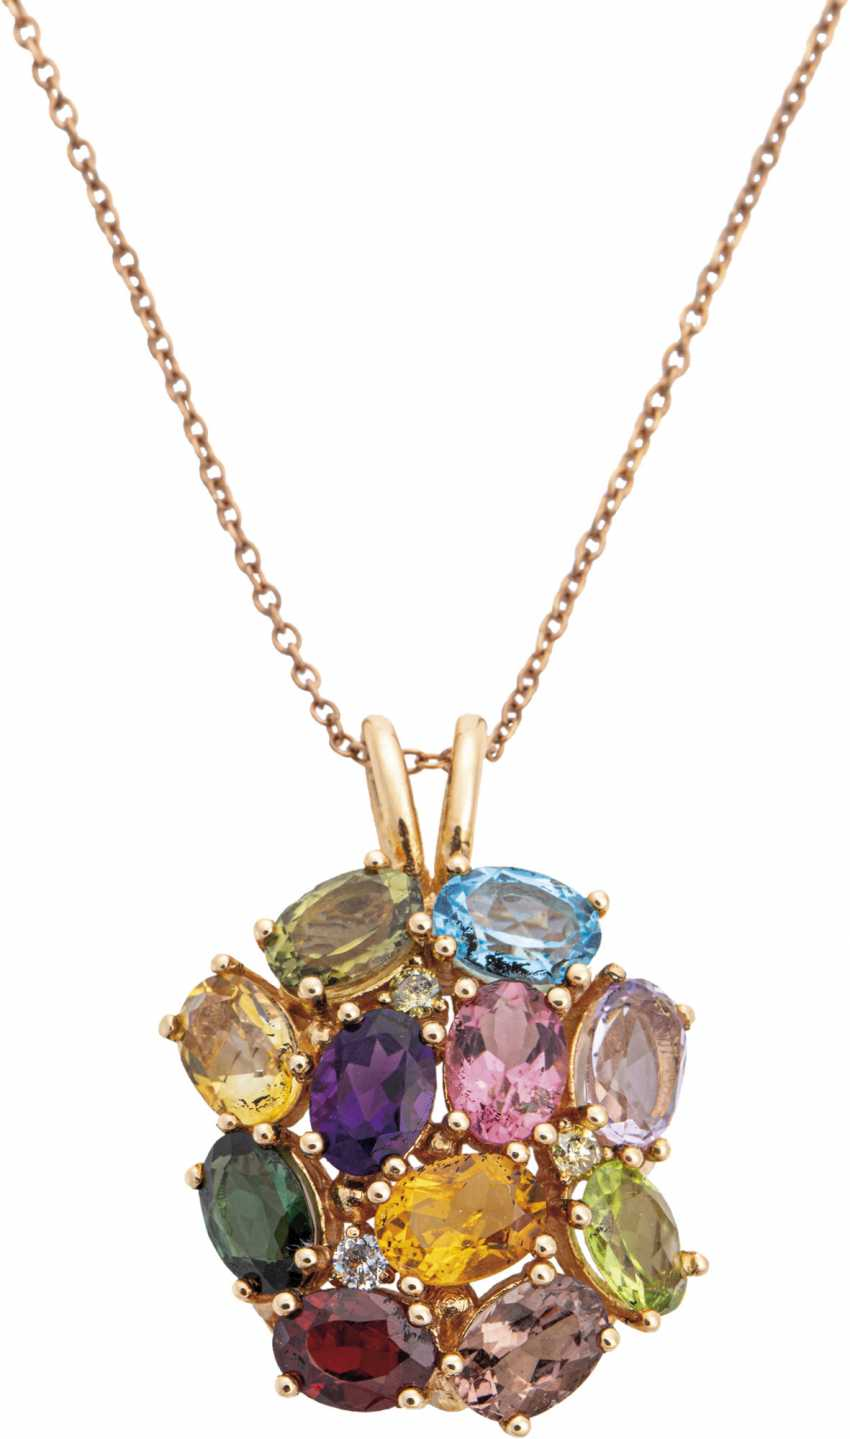 Color gemstone pendant with chain - photo 1